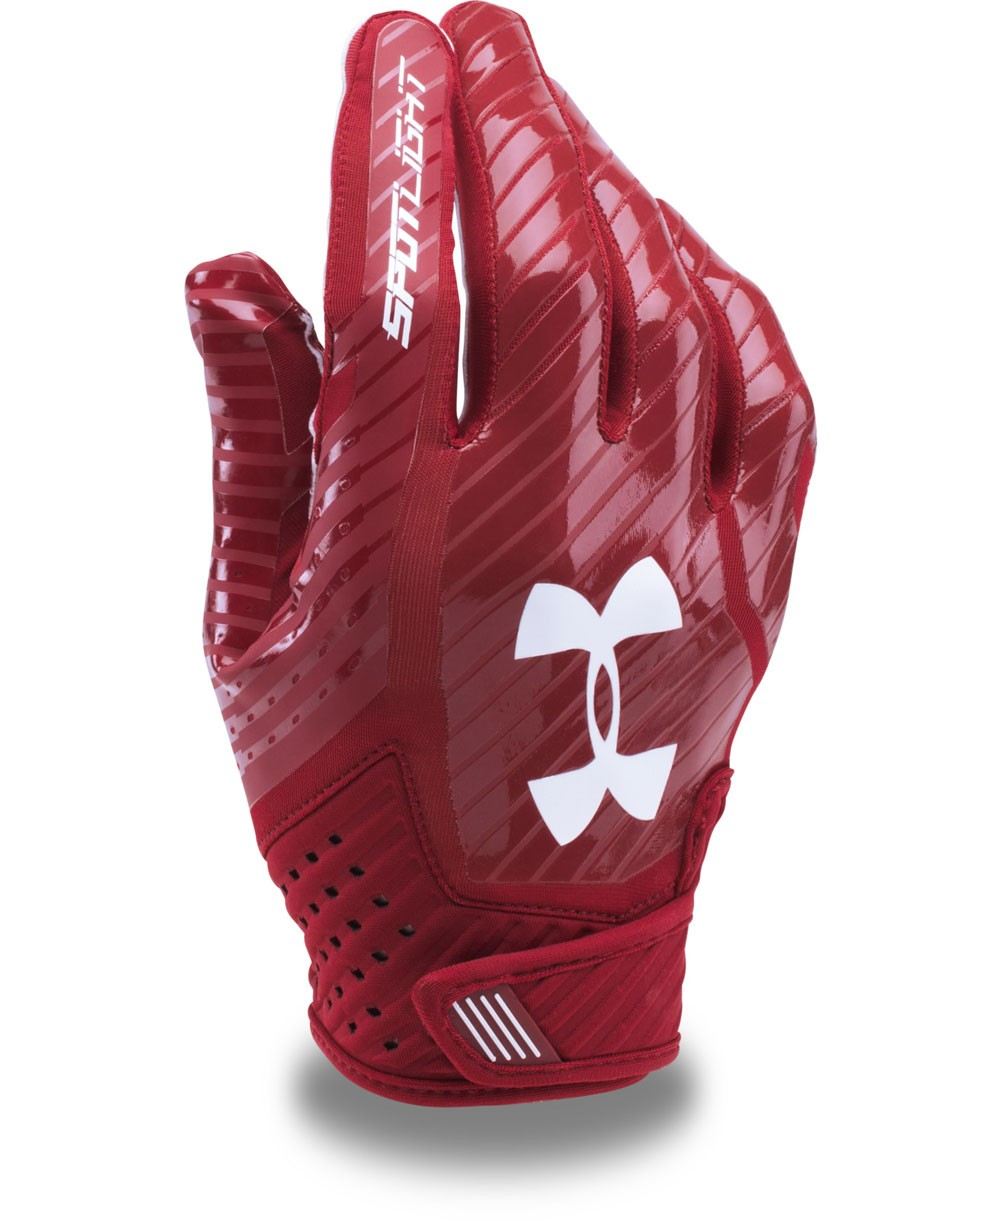 26e9e8929ae85 Under Armour Spotlight Men's American Football Gloves Cardinal